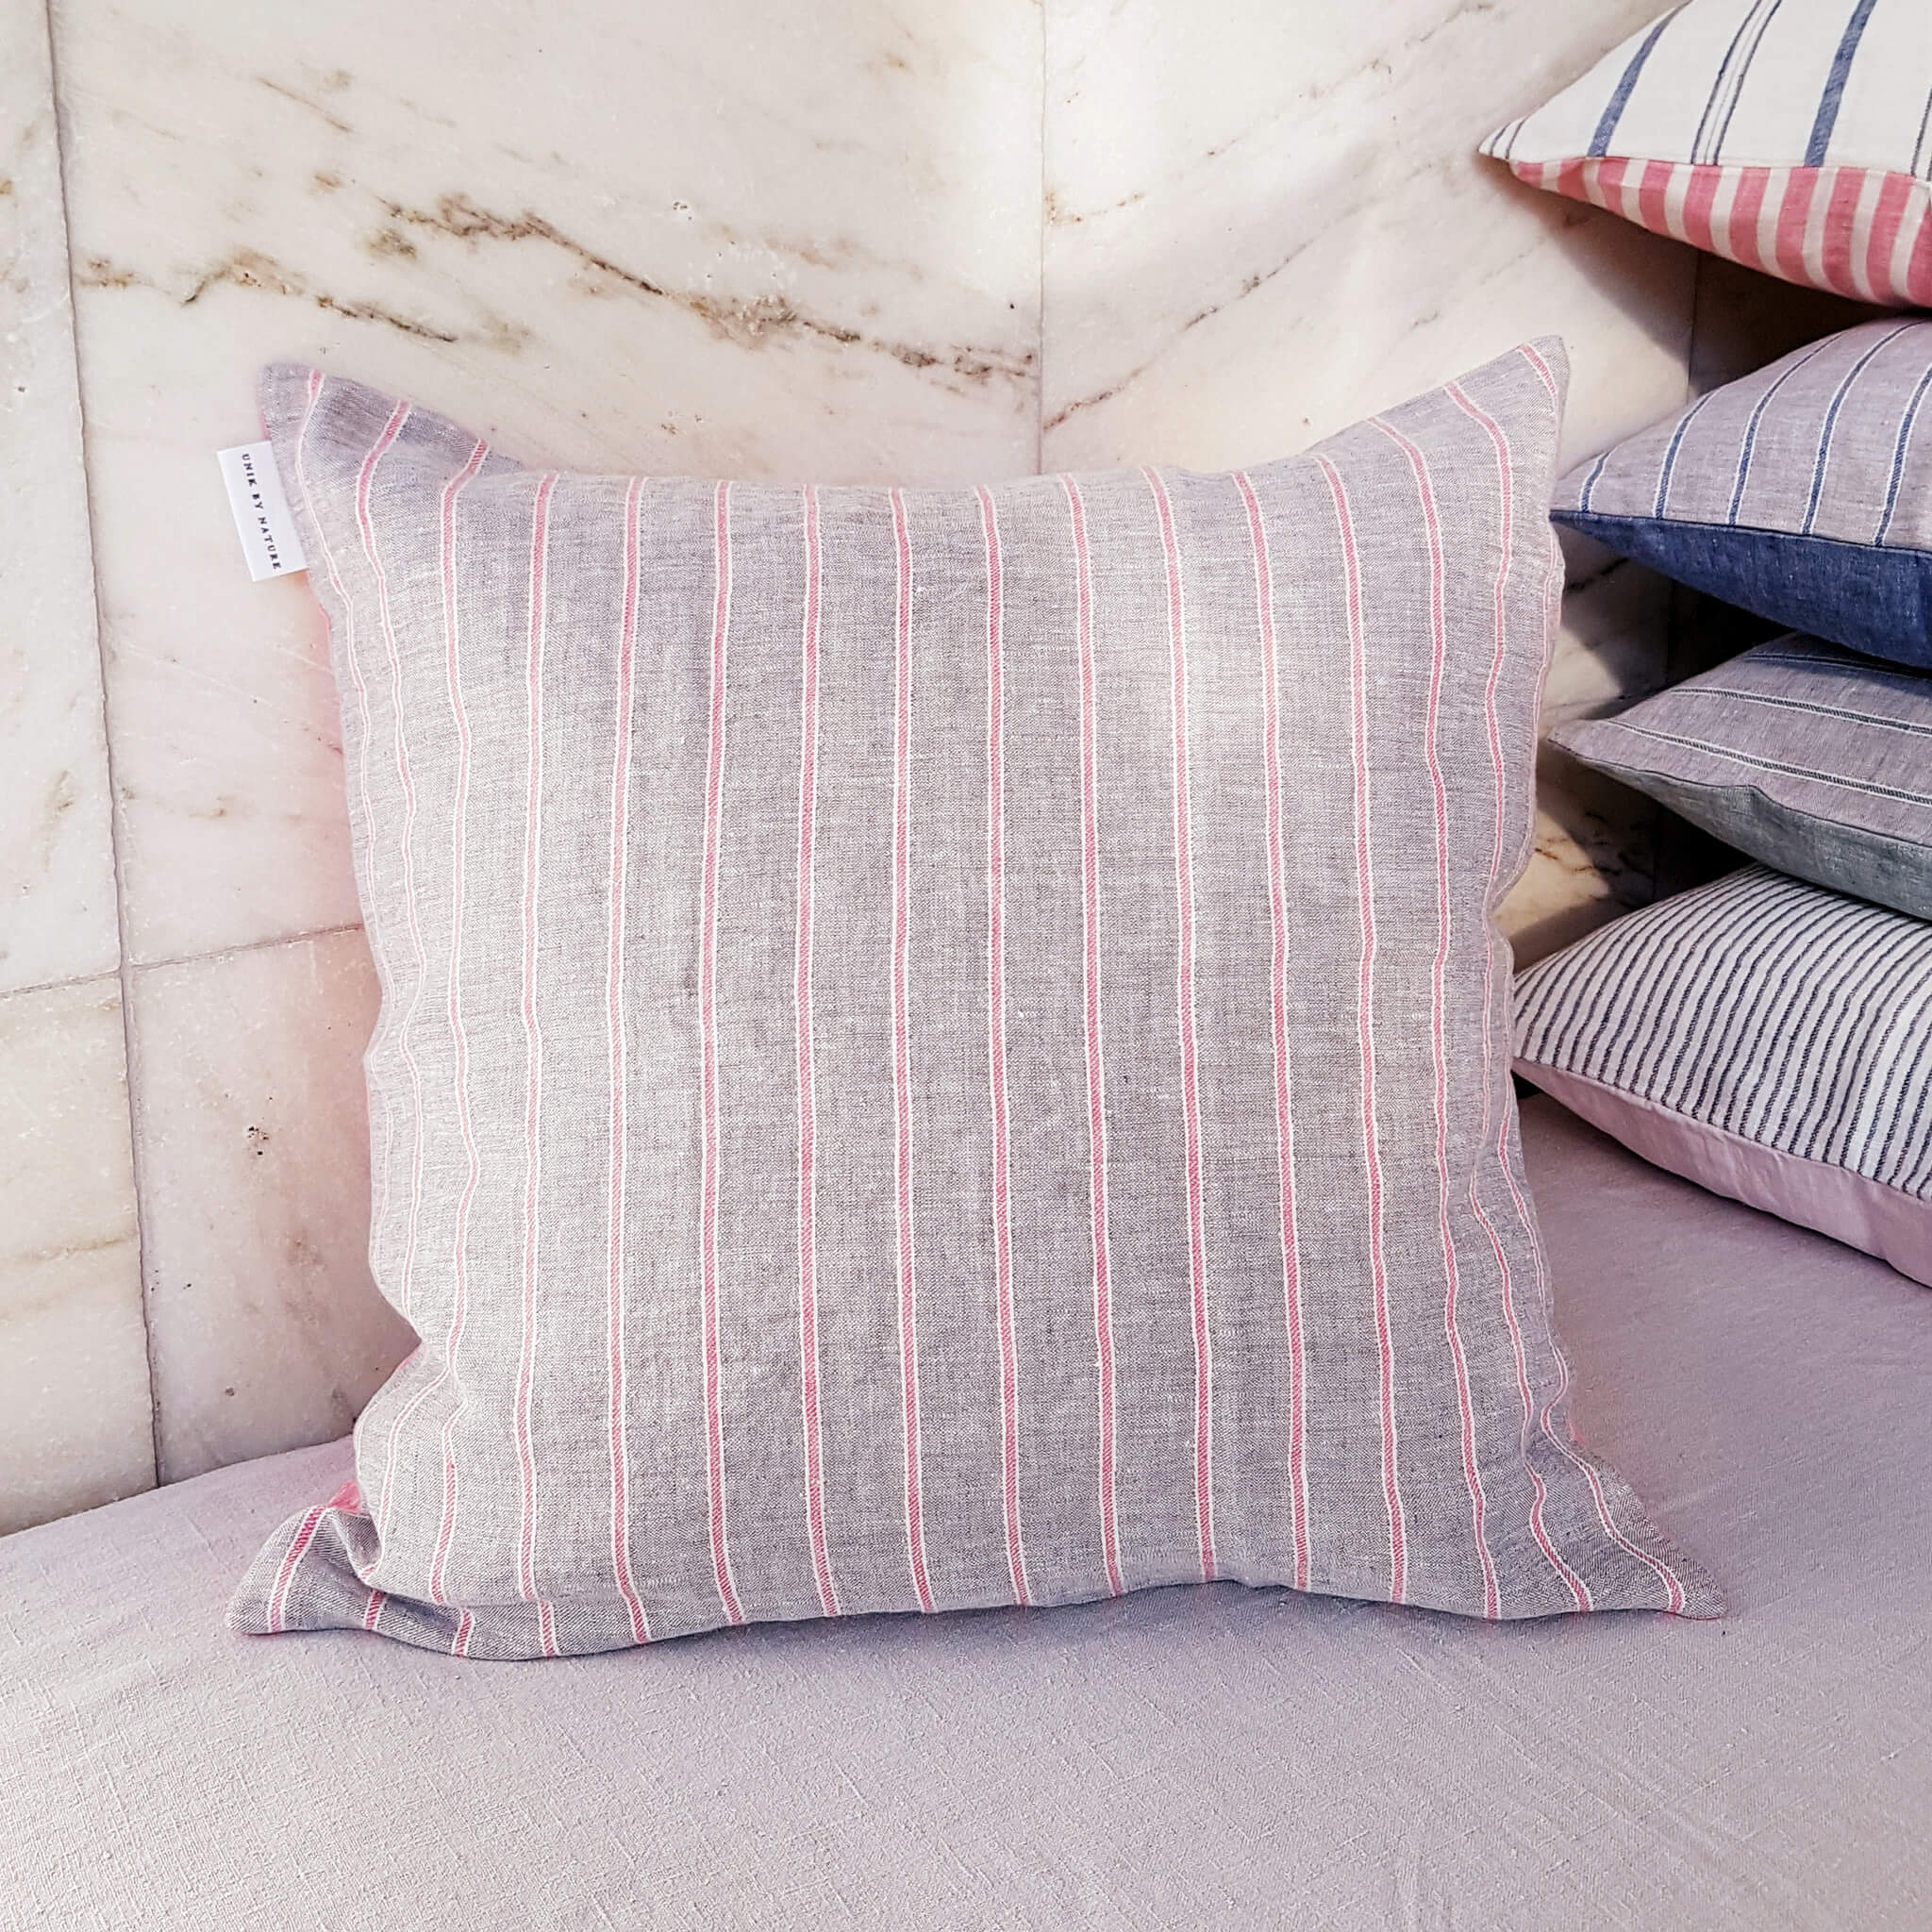 Padva Linen Cushion Cover 50 x 50 Wild Rose - Unik by Nature